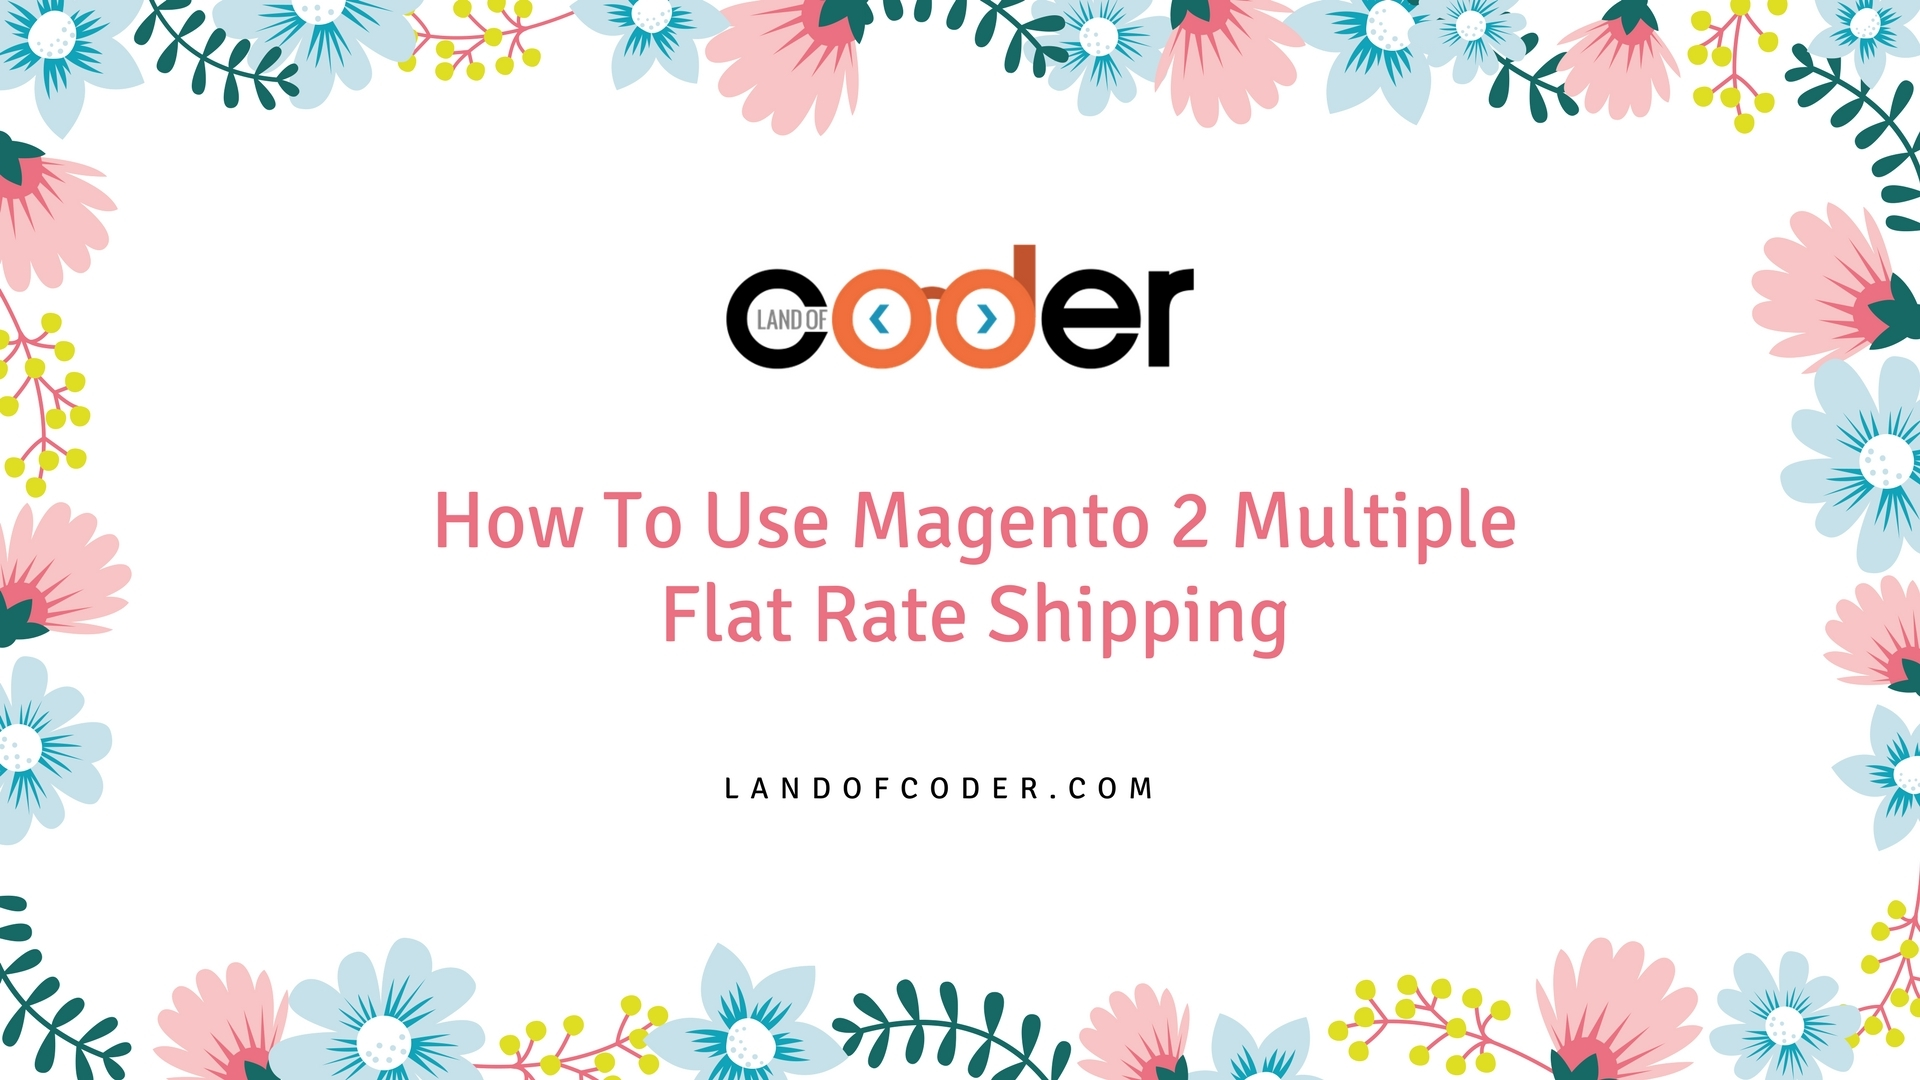 Use Magento 2 Multiple Flat Rate Shipping